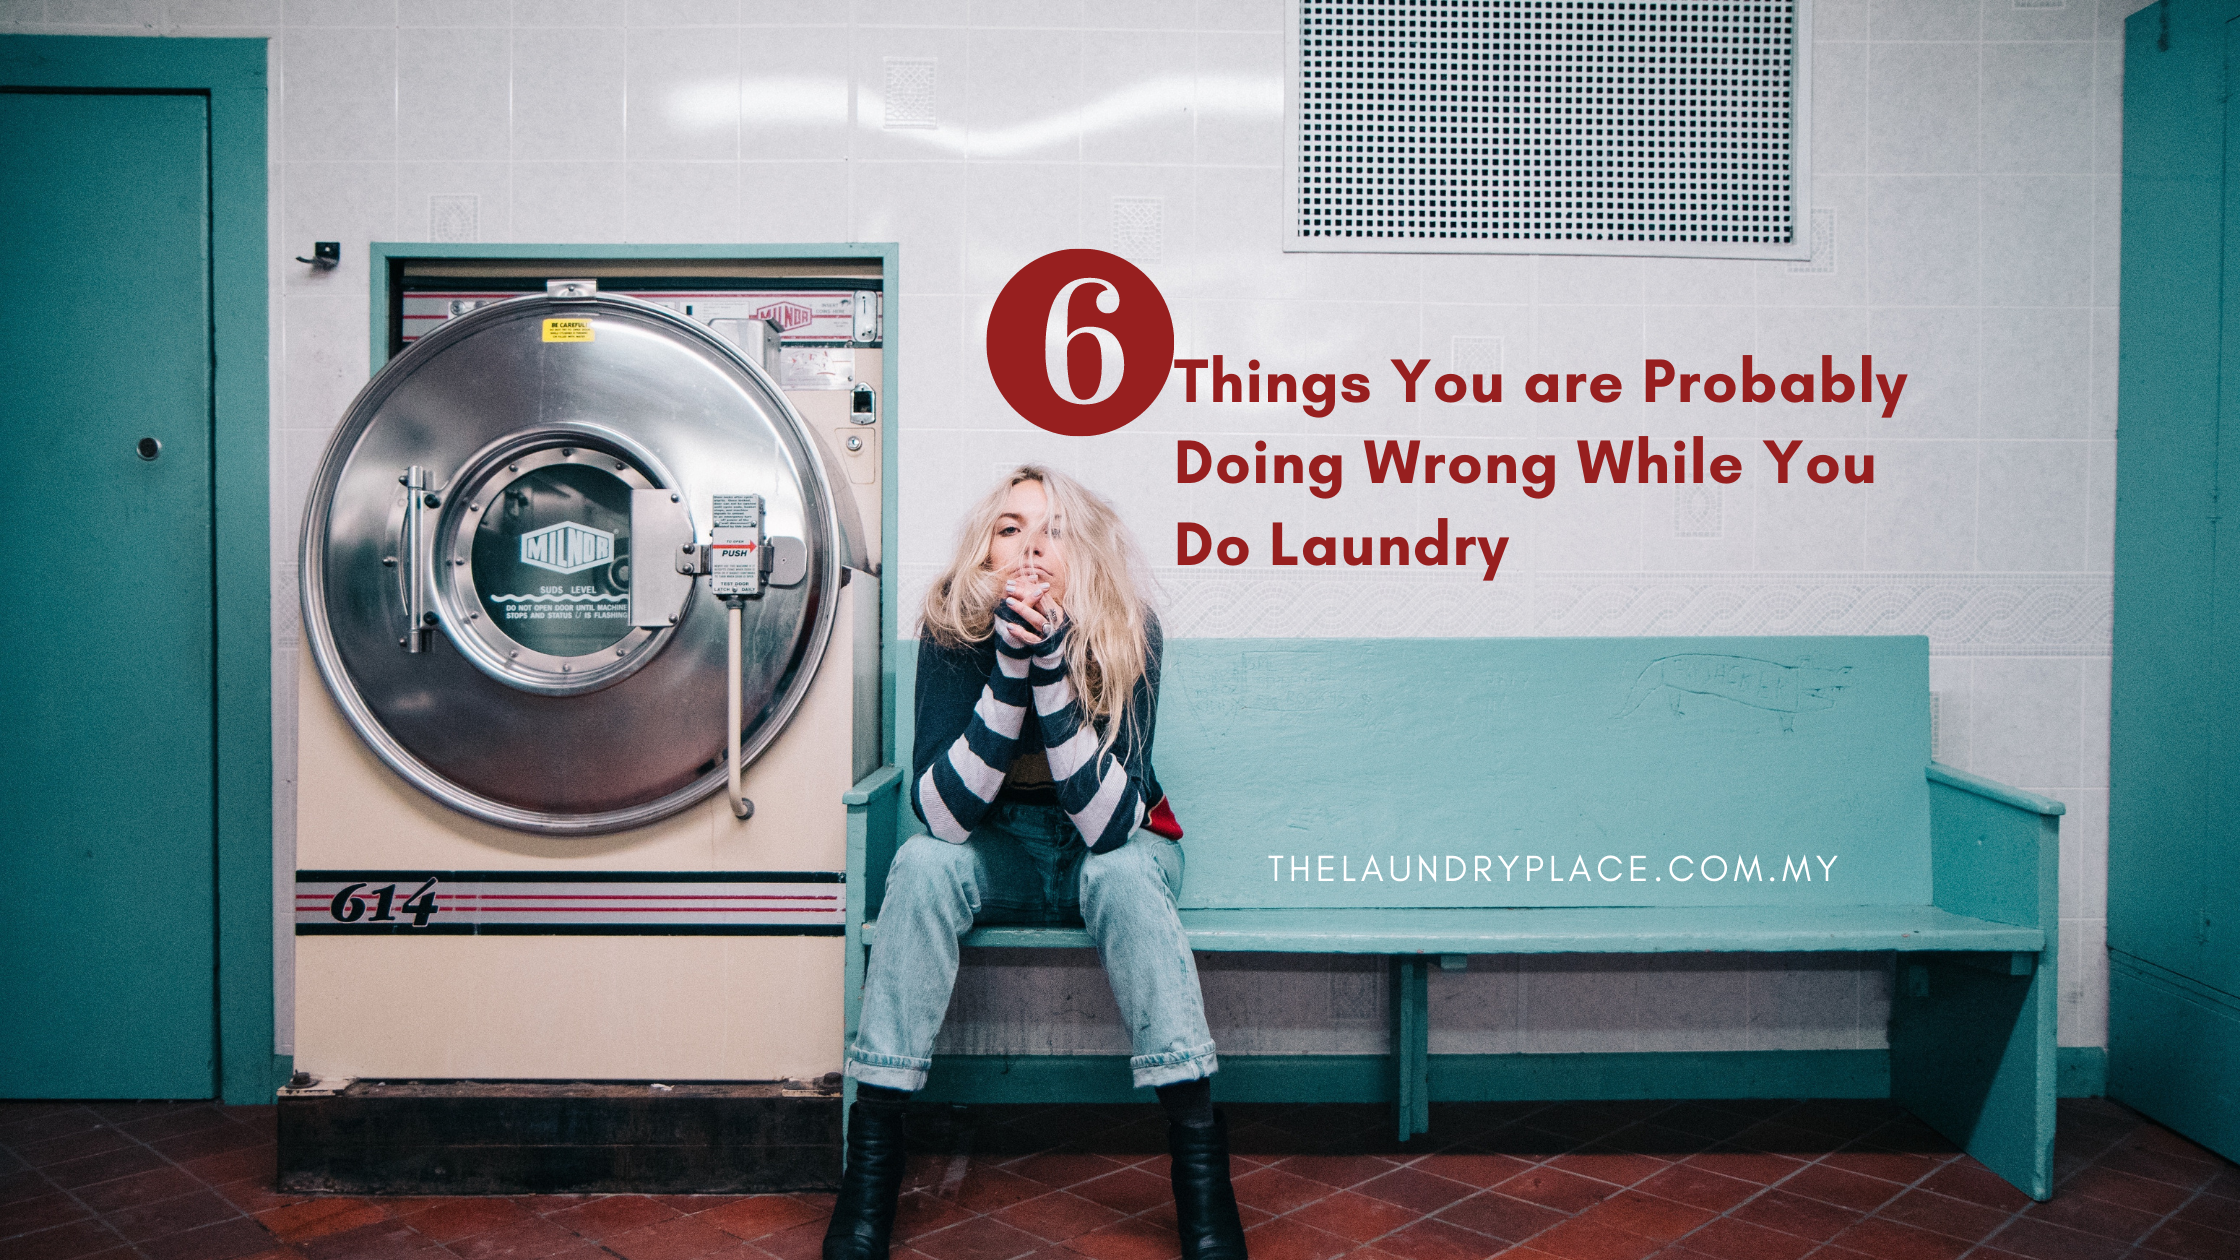 6 Things You are Probably Doing Wrong While You Do Laundry